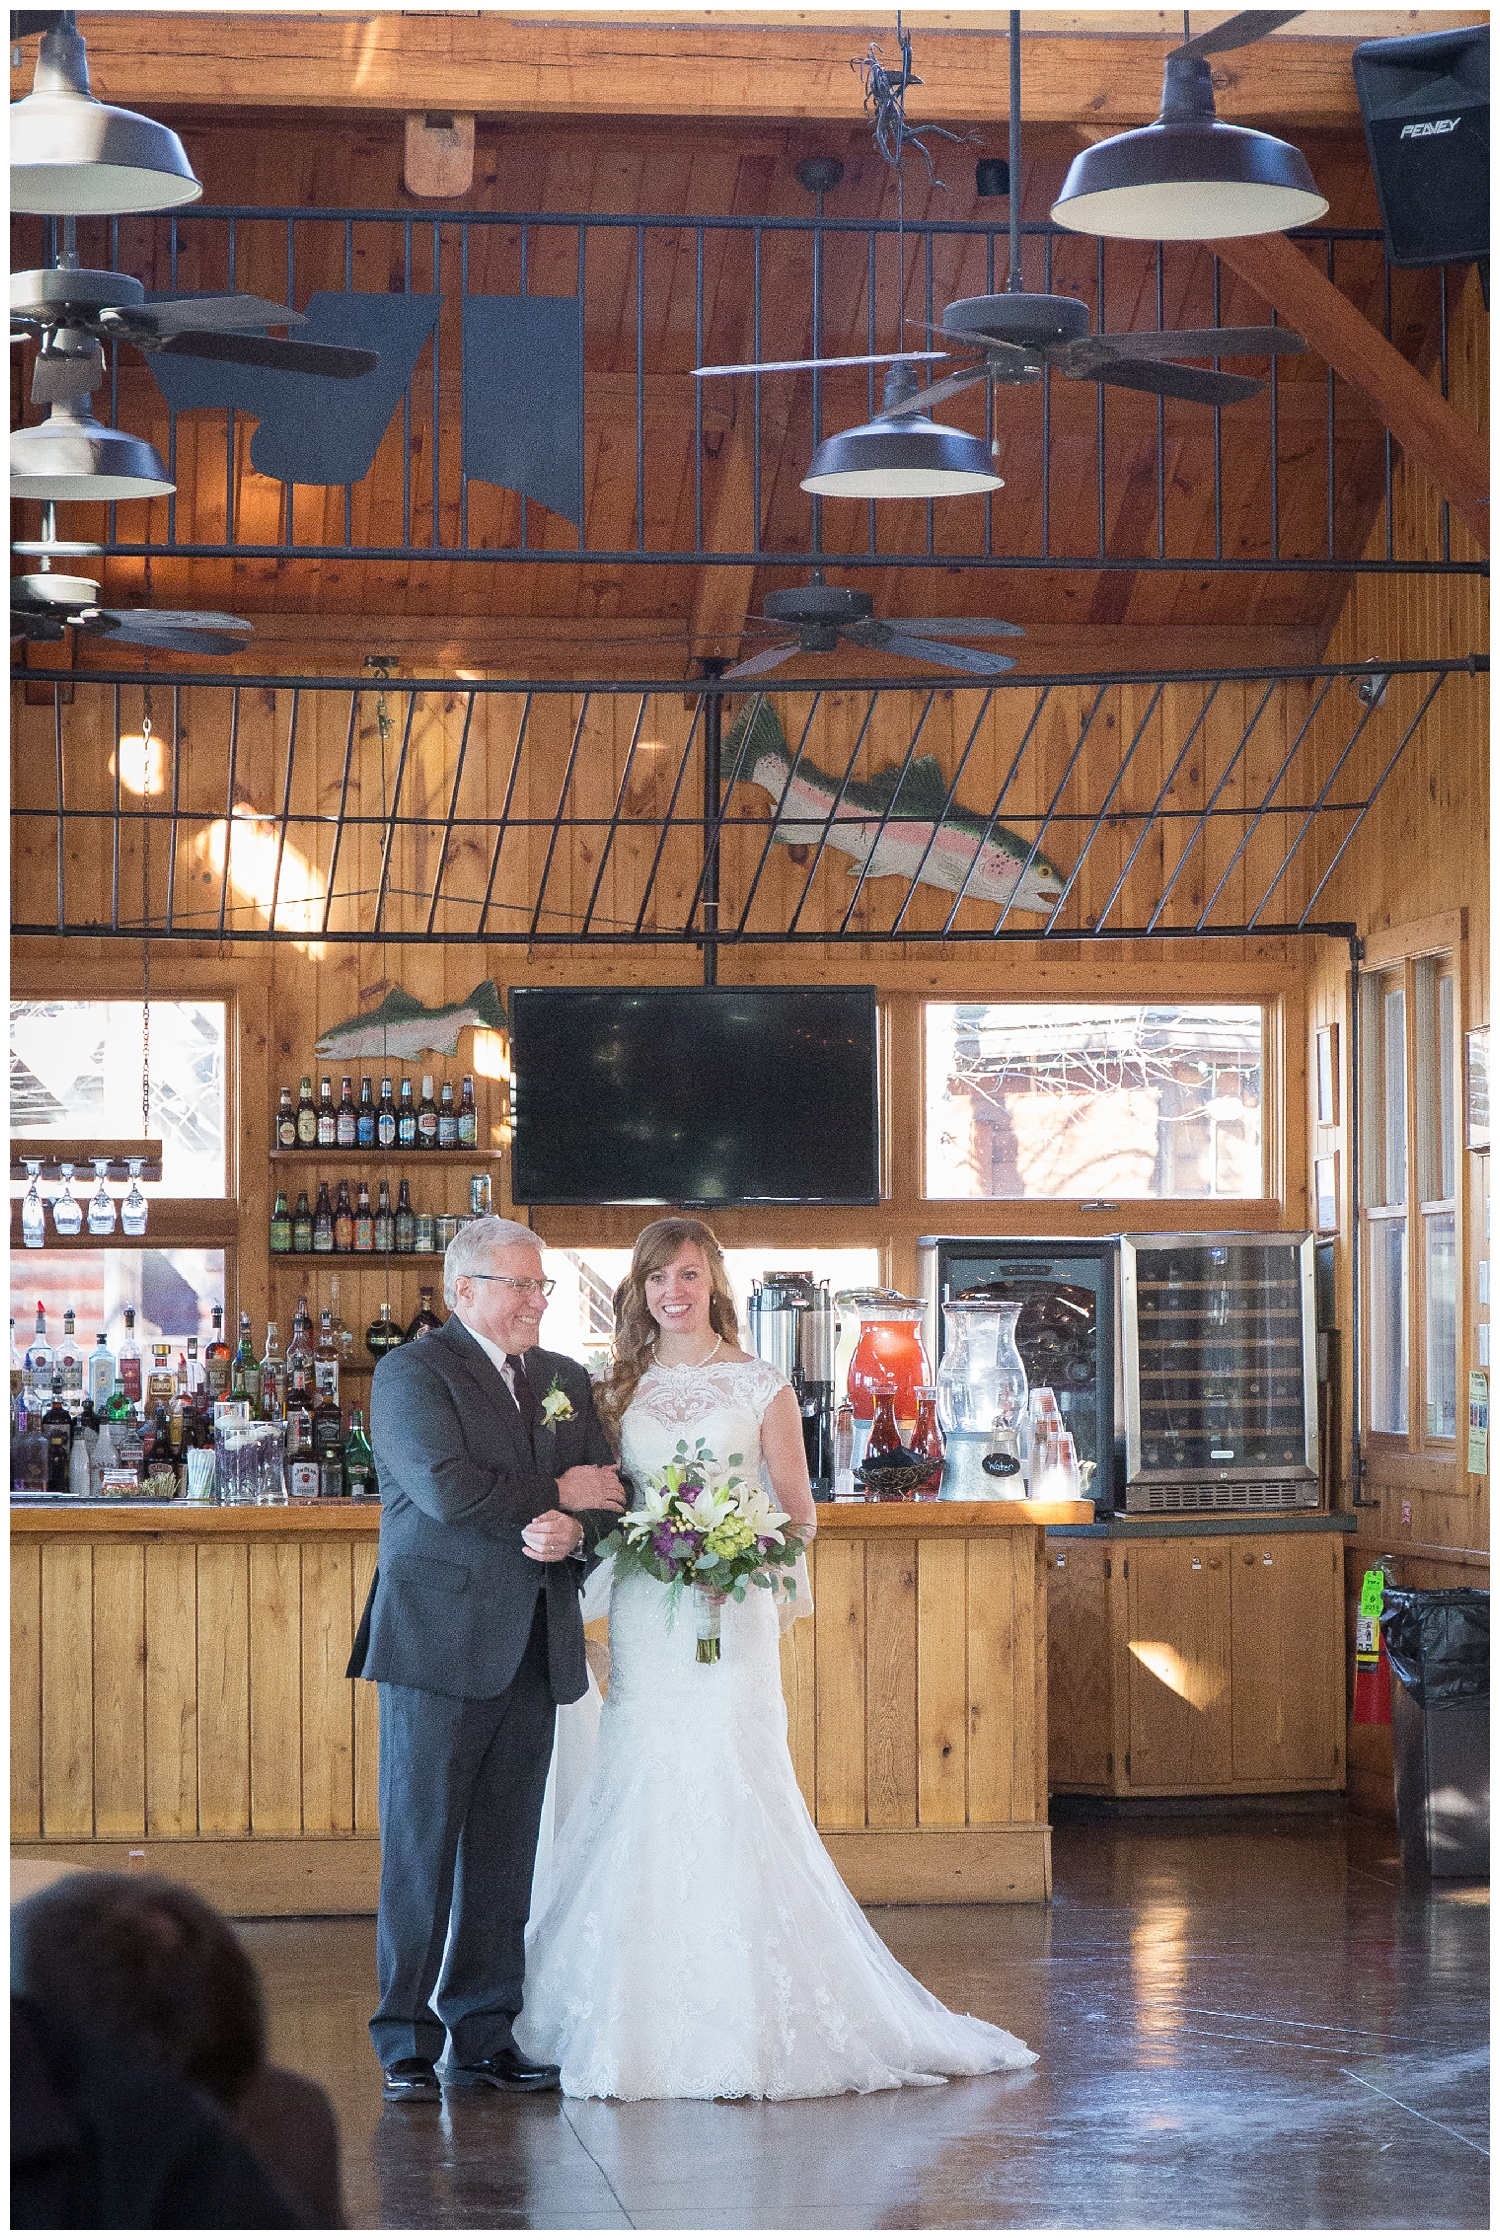 Erika and Zach say I DO at Smokey's Adventure on the Gorge in WV Maryn Graves Productions Weddings